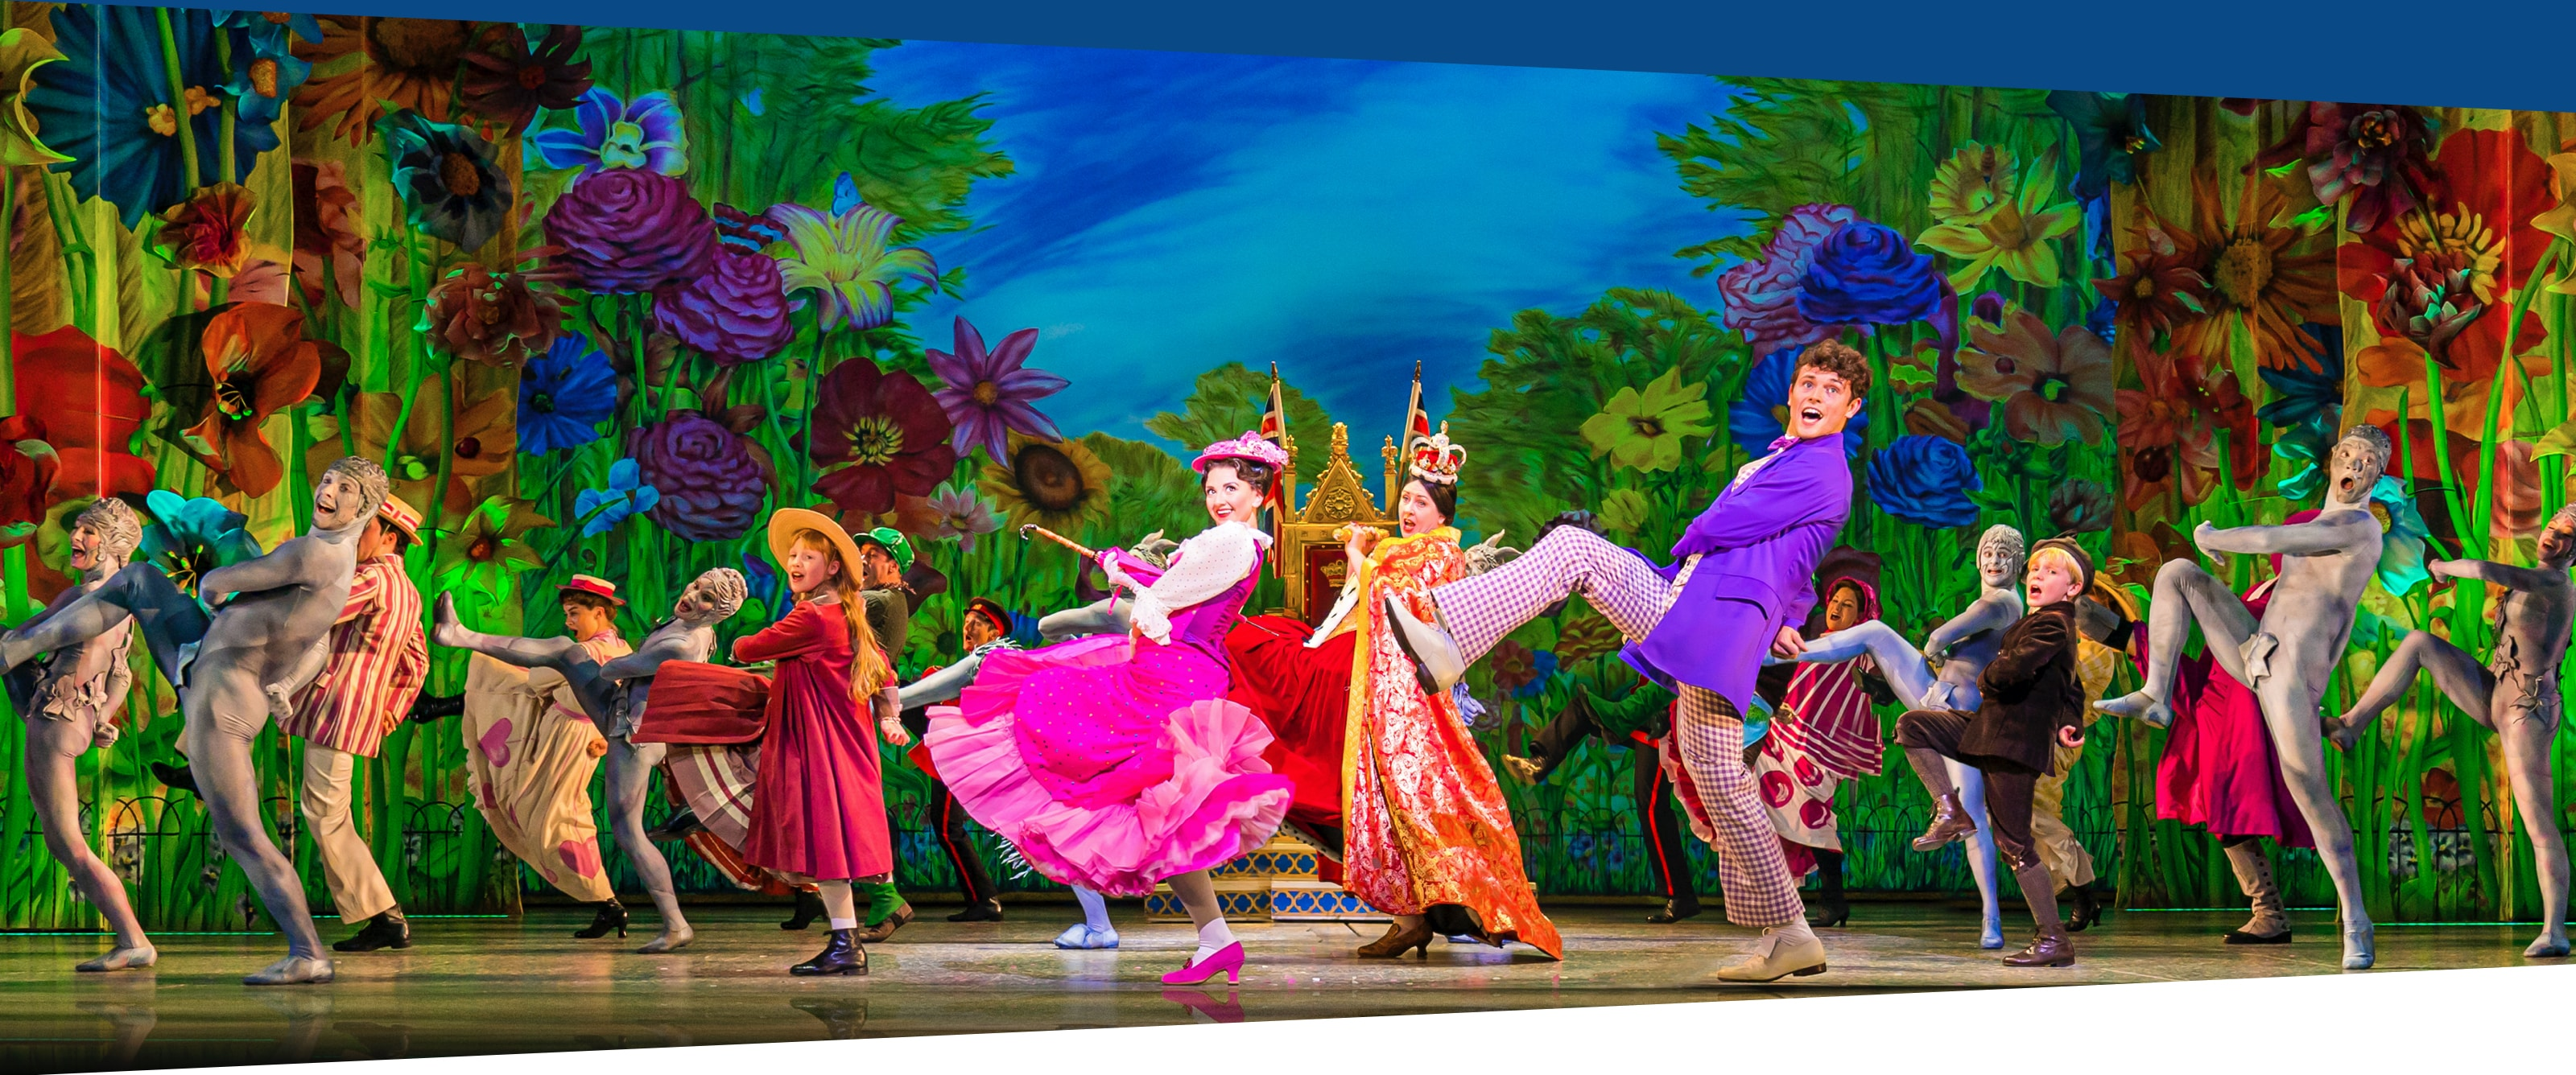 Actors dancing on stage in Mary Poppins the Musical